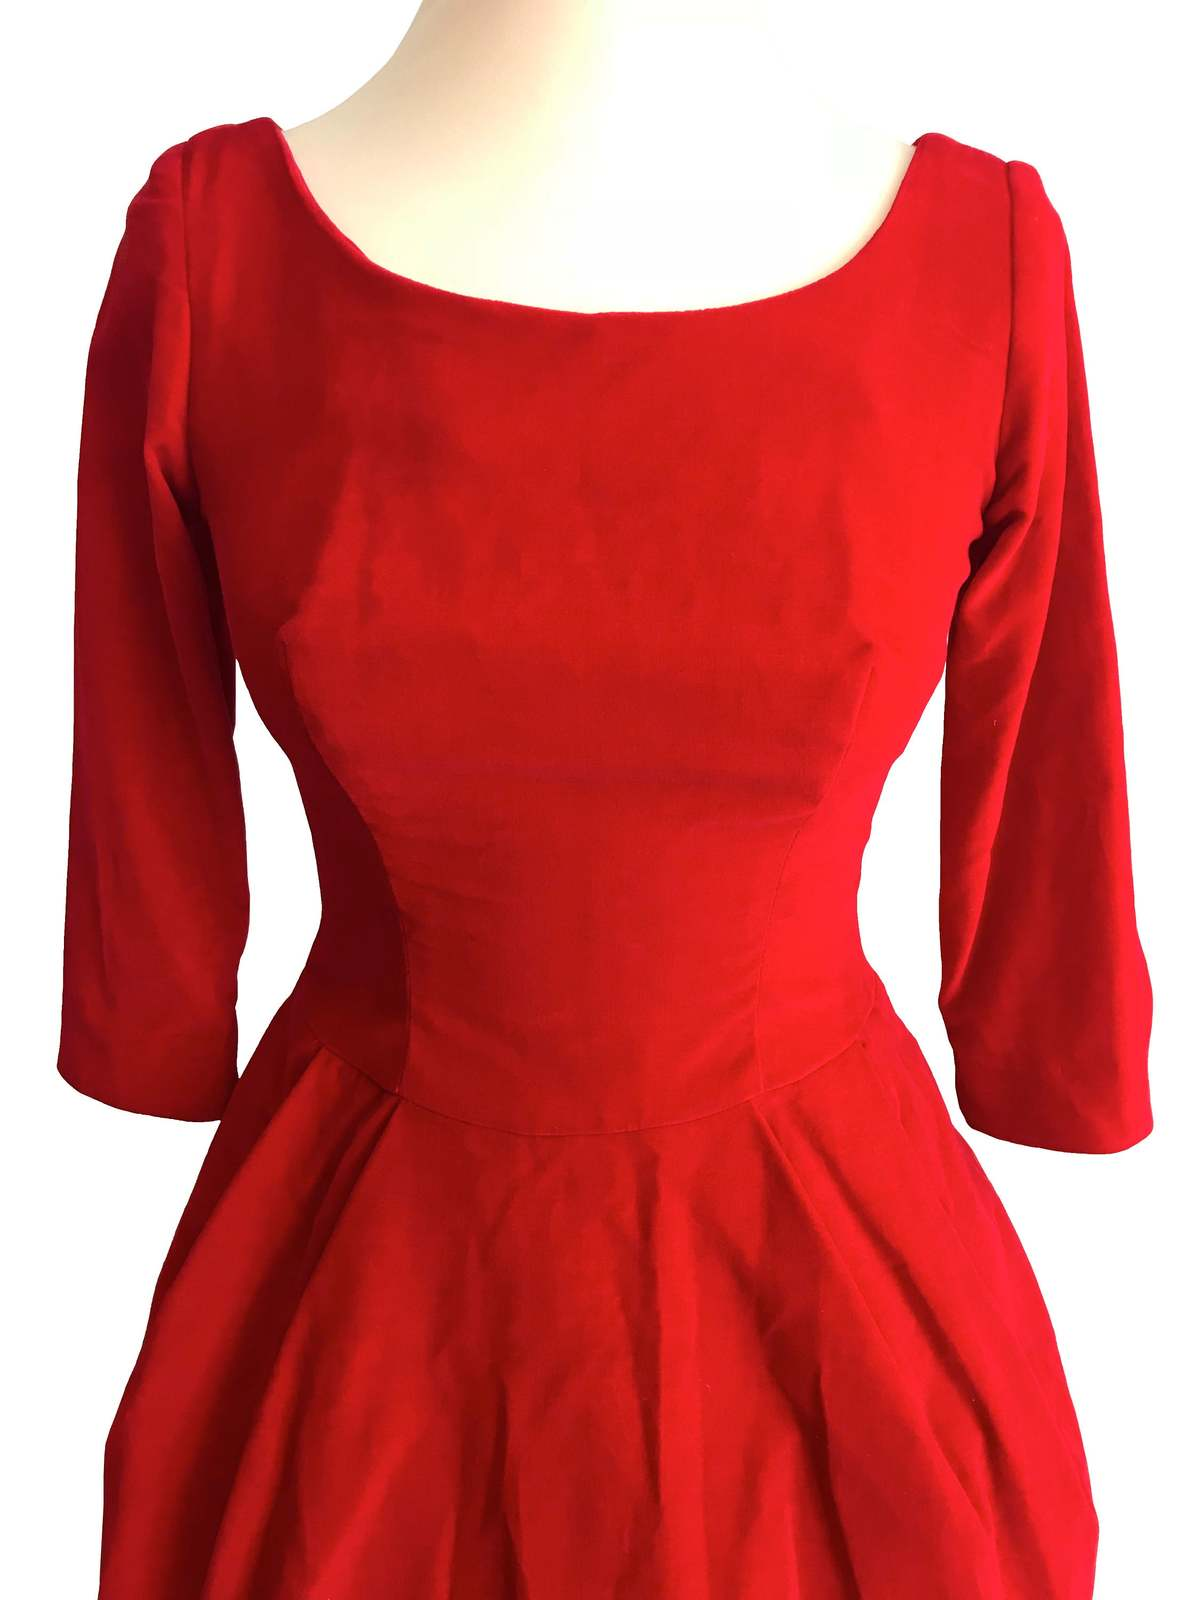 50s Poppy Red Velvet Fit & Flare Xmas Party Bubble Skirt Pin Up Rockabilly Dress image 4